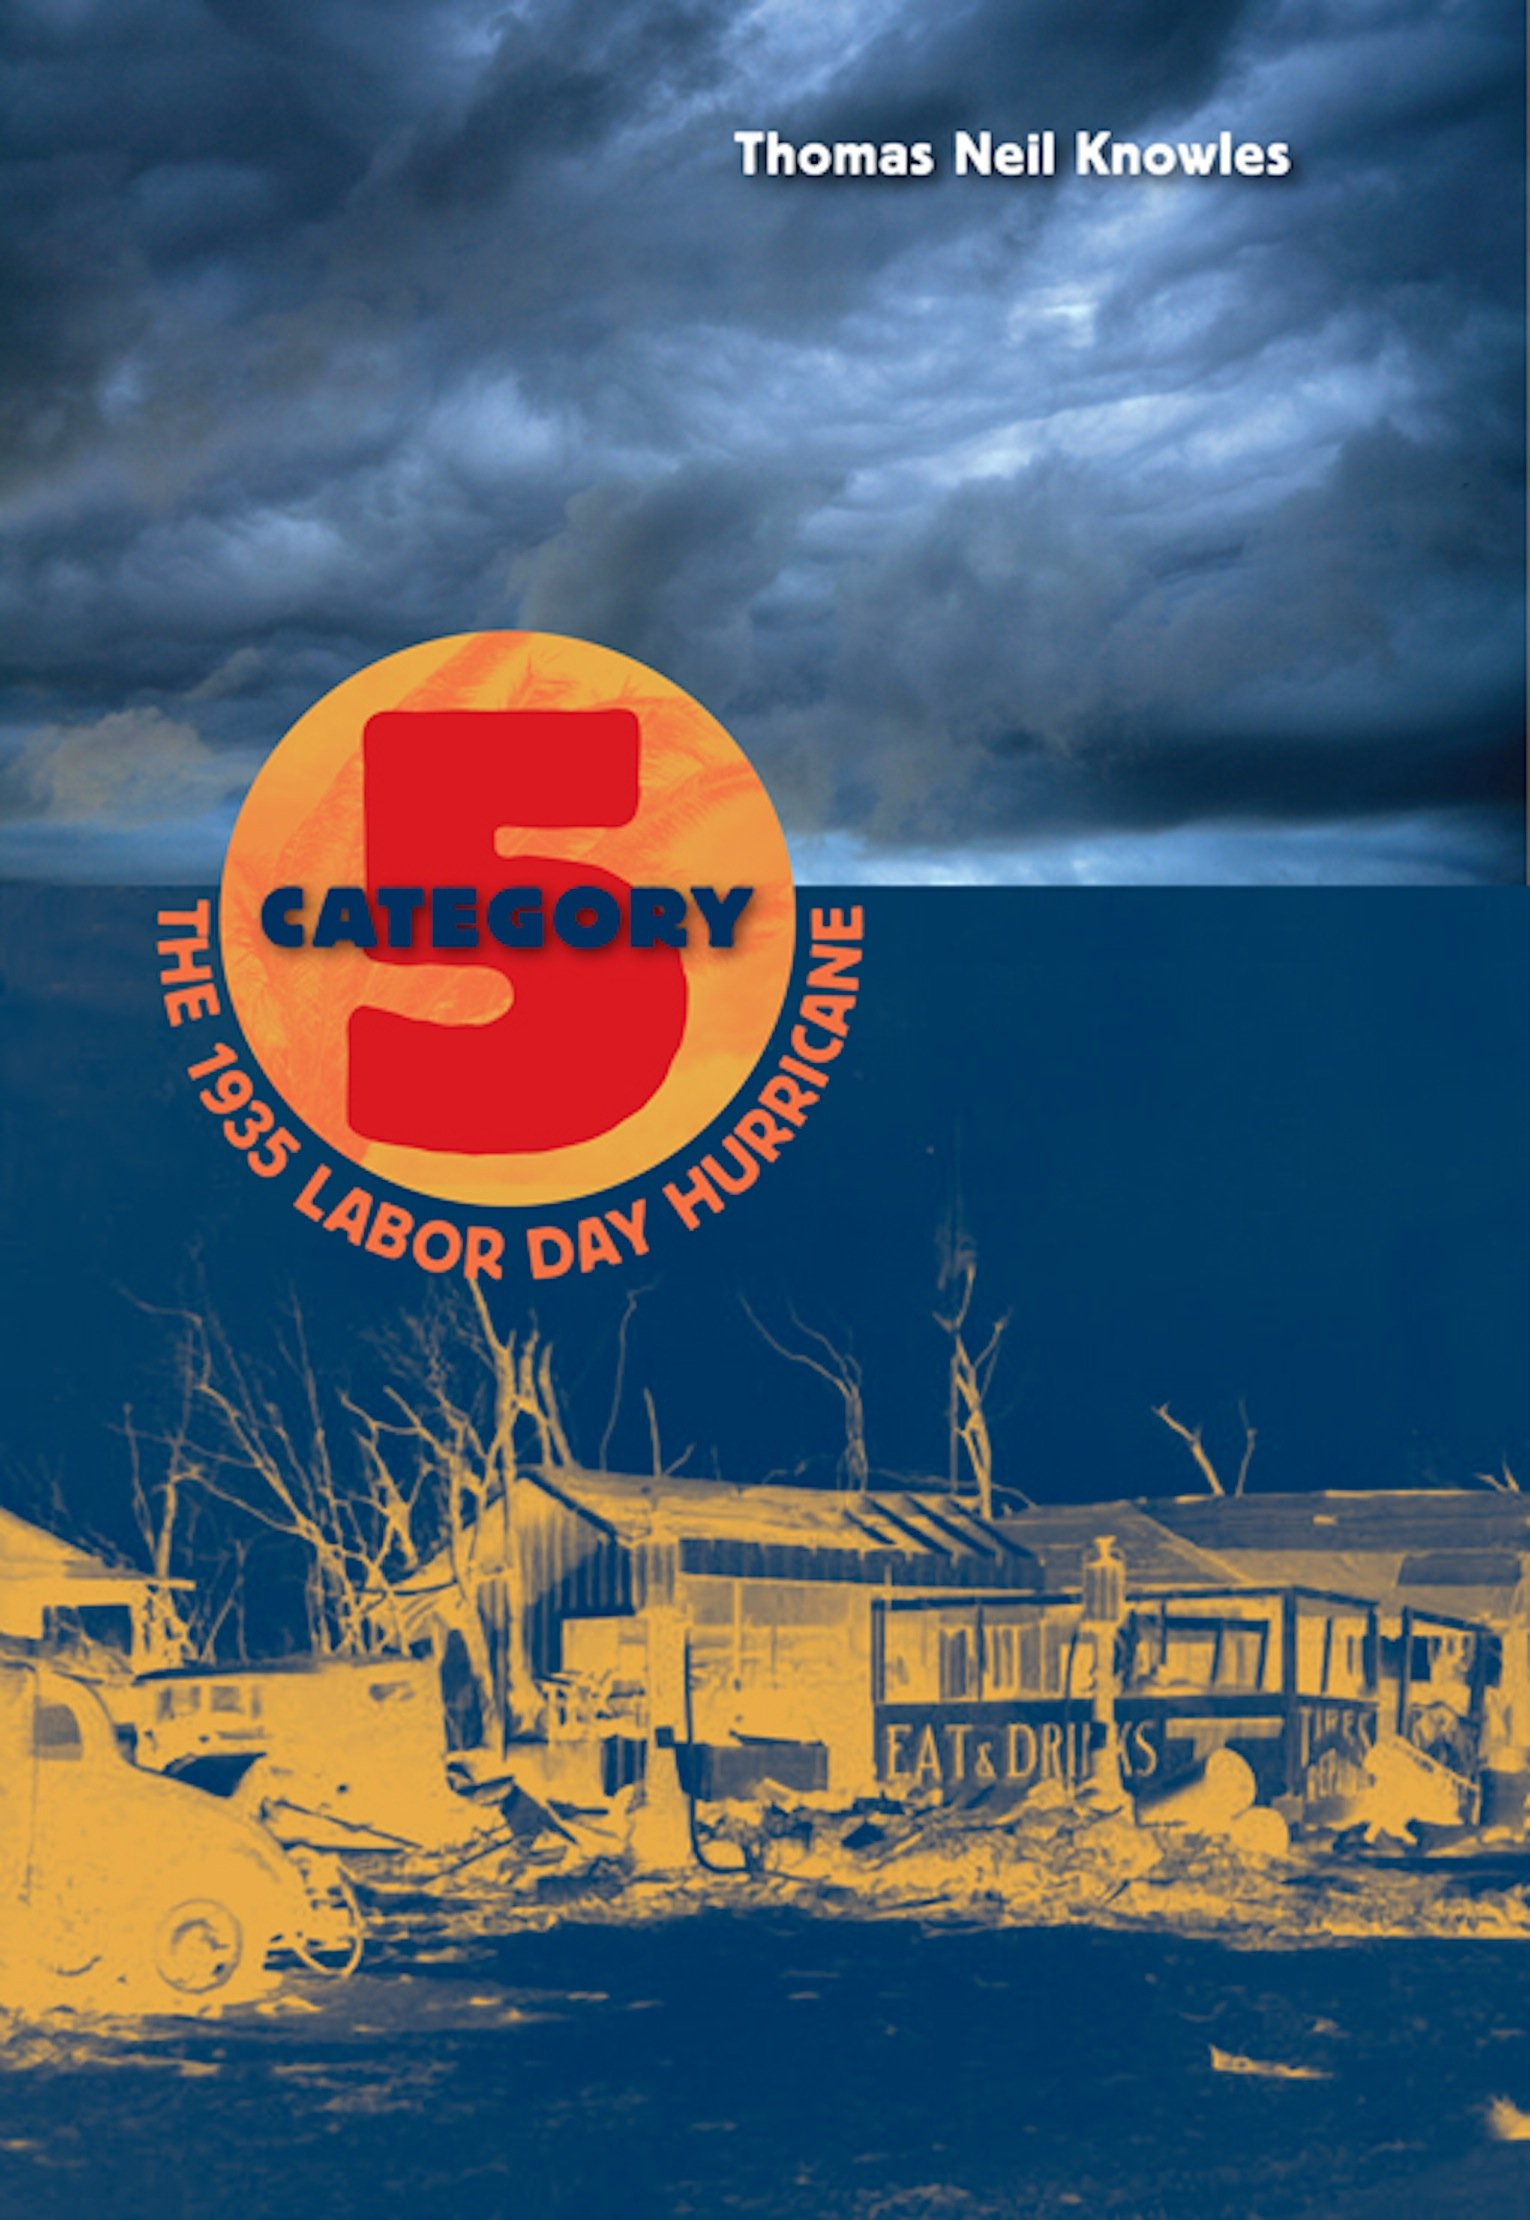 Category 5 the 1935 labor day hurricane florida quincentennial category 5 the 1935 labor day hurricane florida quincentennial books thomas neil knowles 9780813061306 amazon books fandeluxe Images